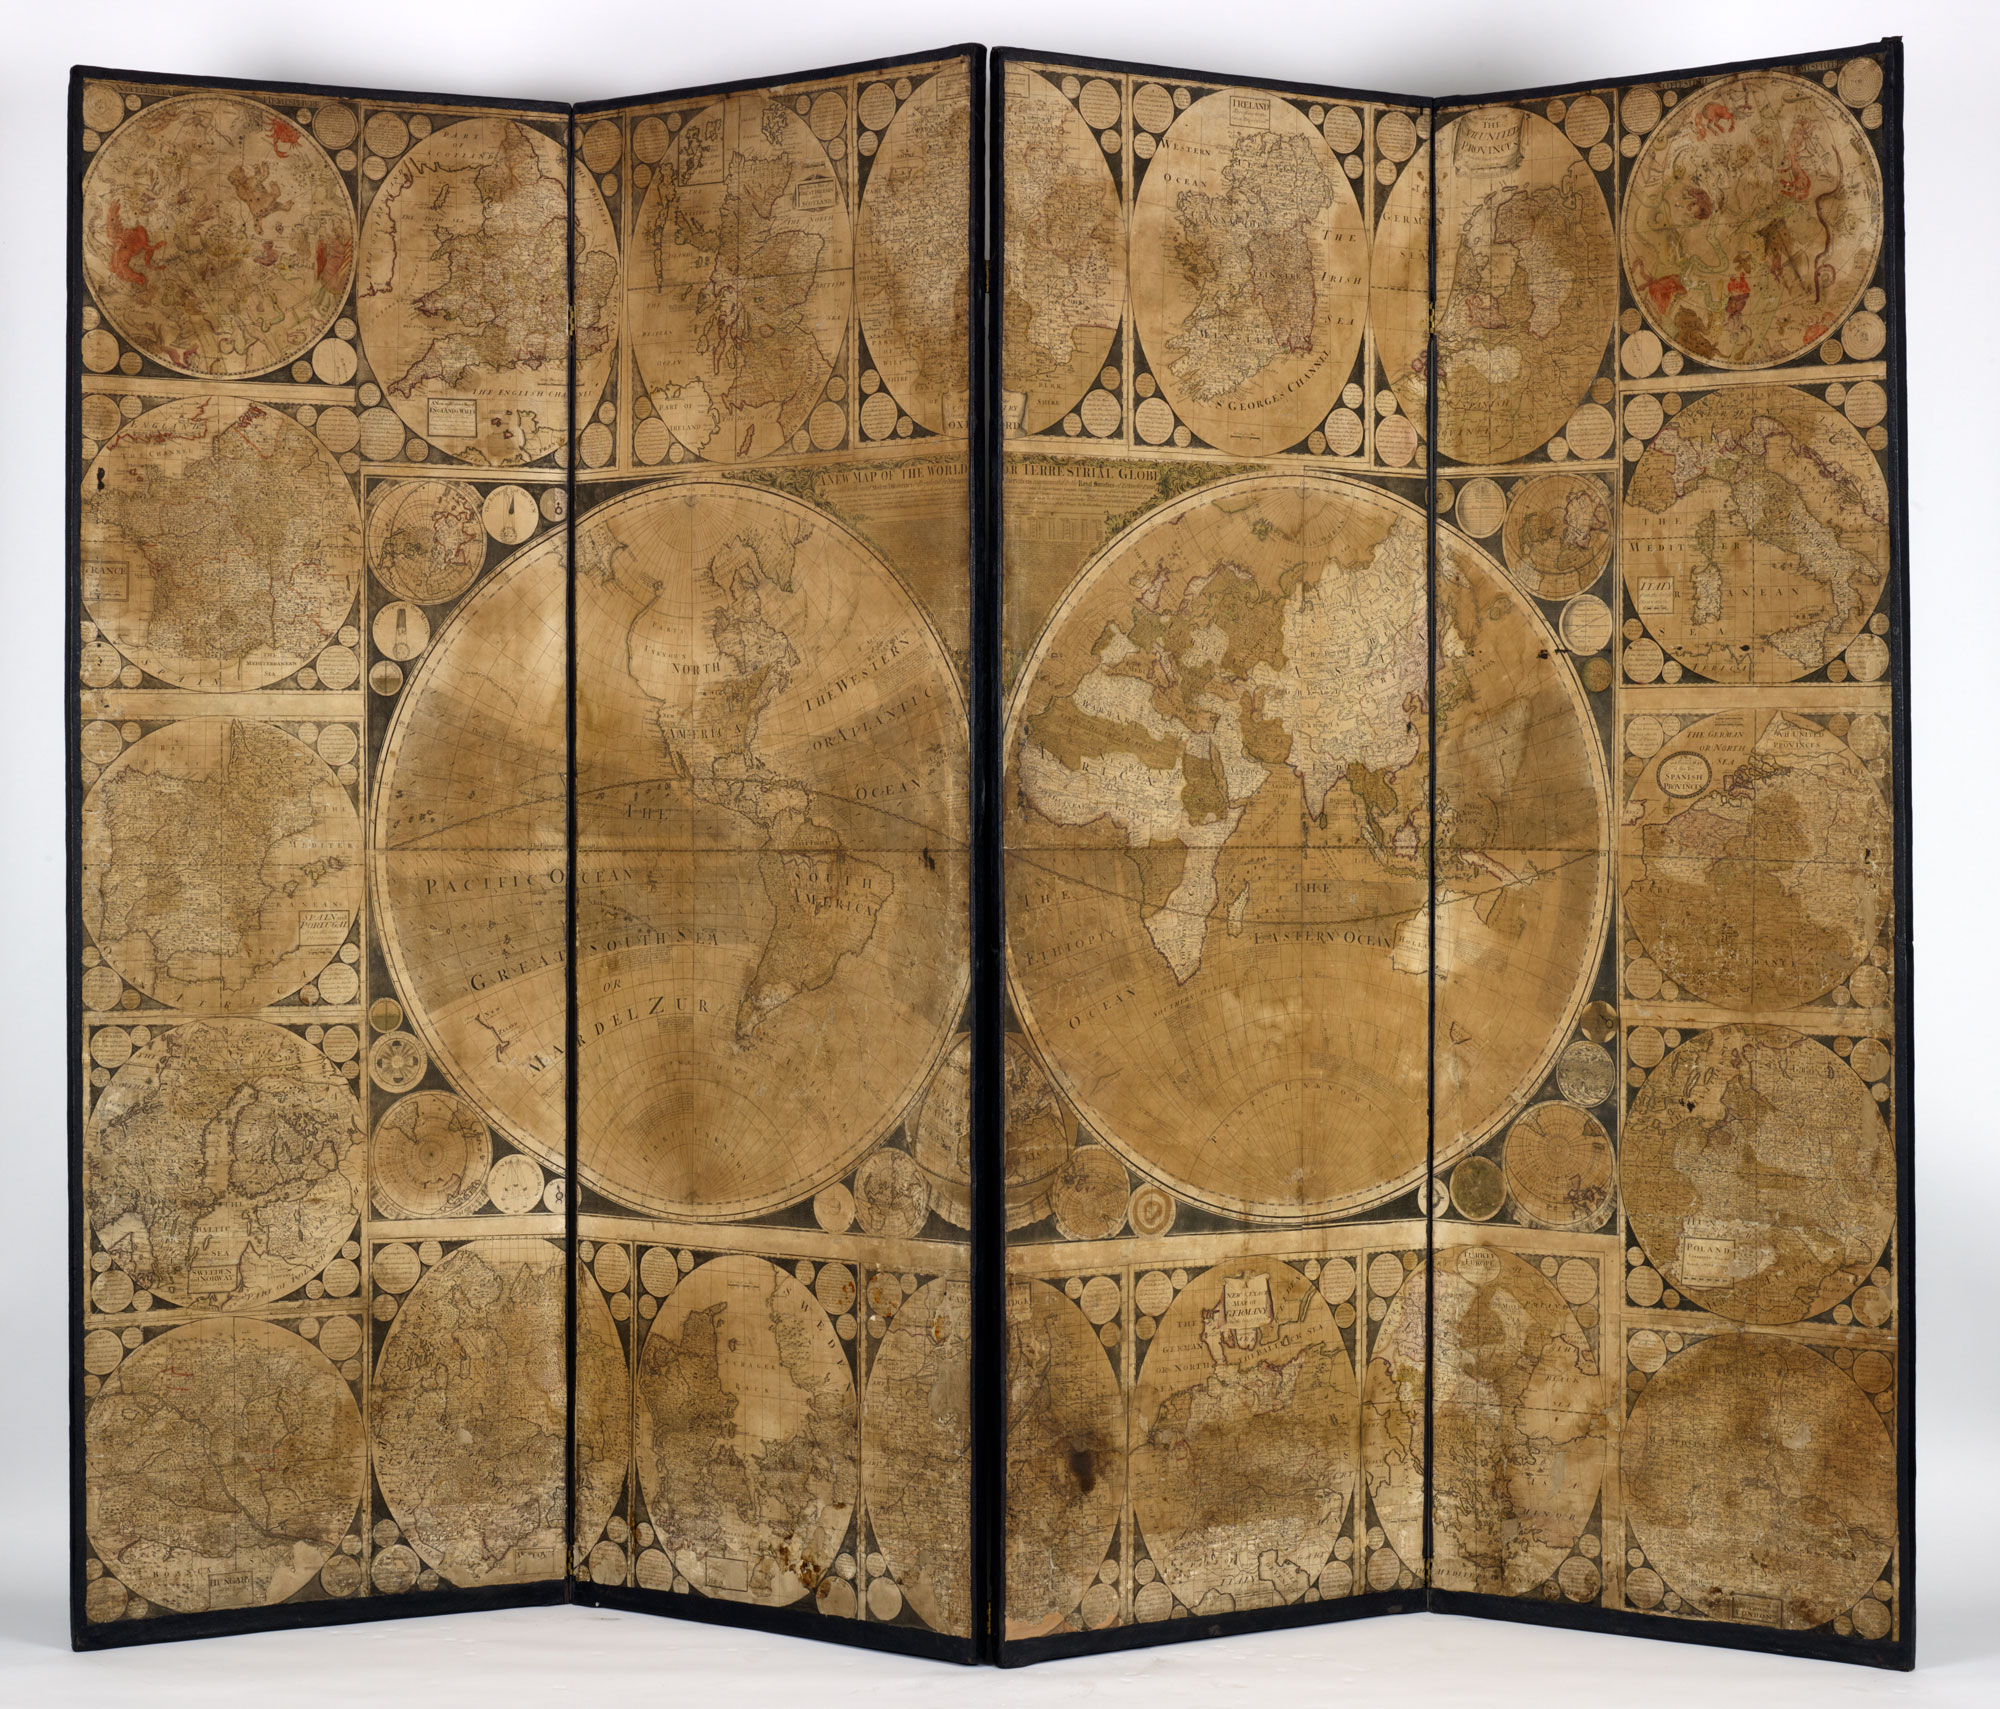 Screen with engraved maps, c. 1750